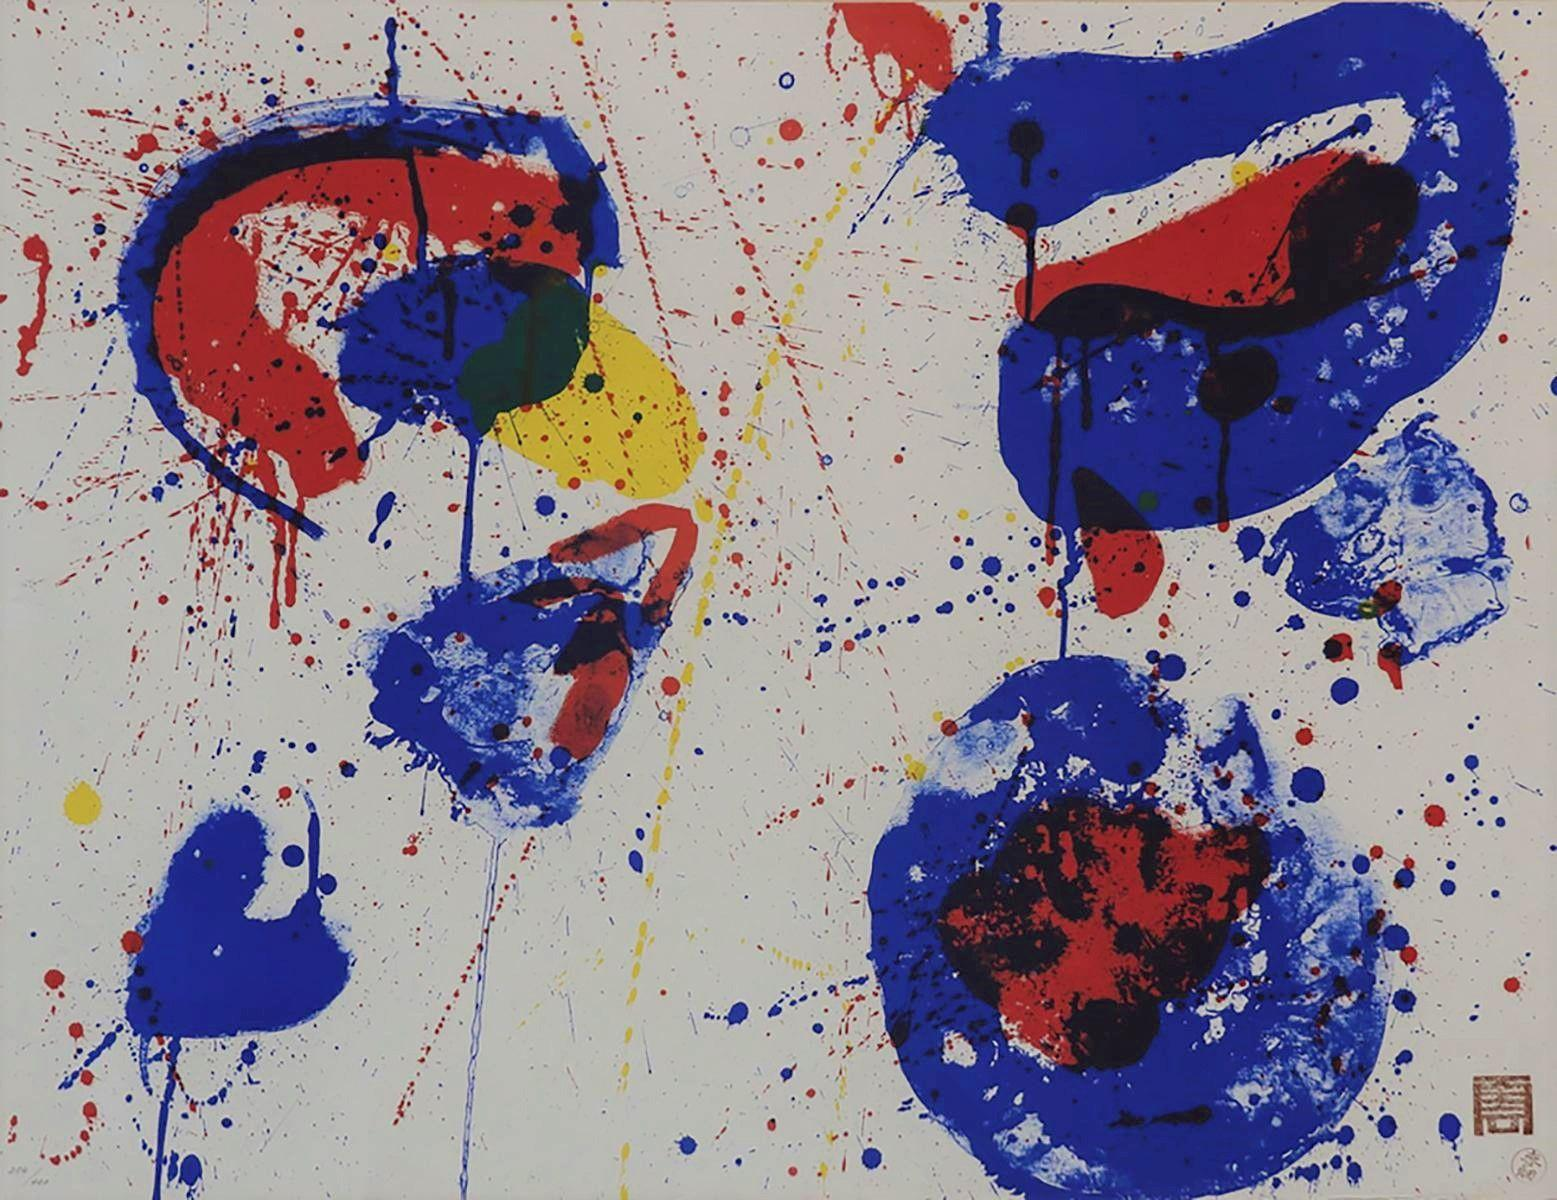 Sam Francis - Hurrah for the Red, White and Blue (SF-17), 1961